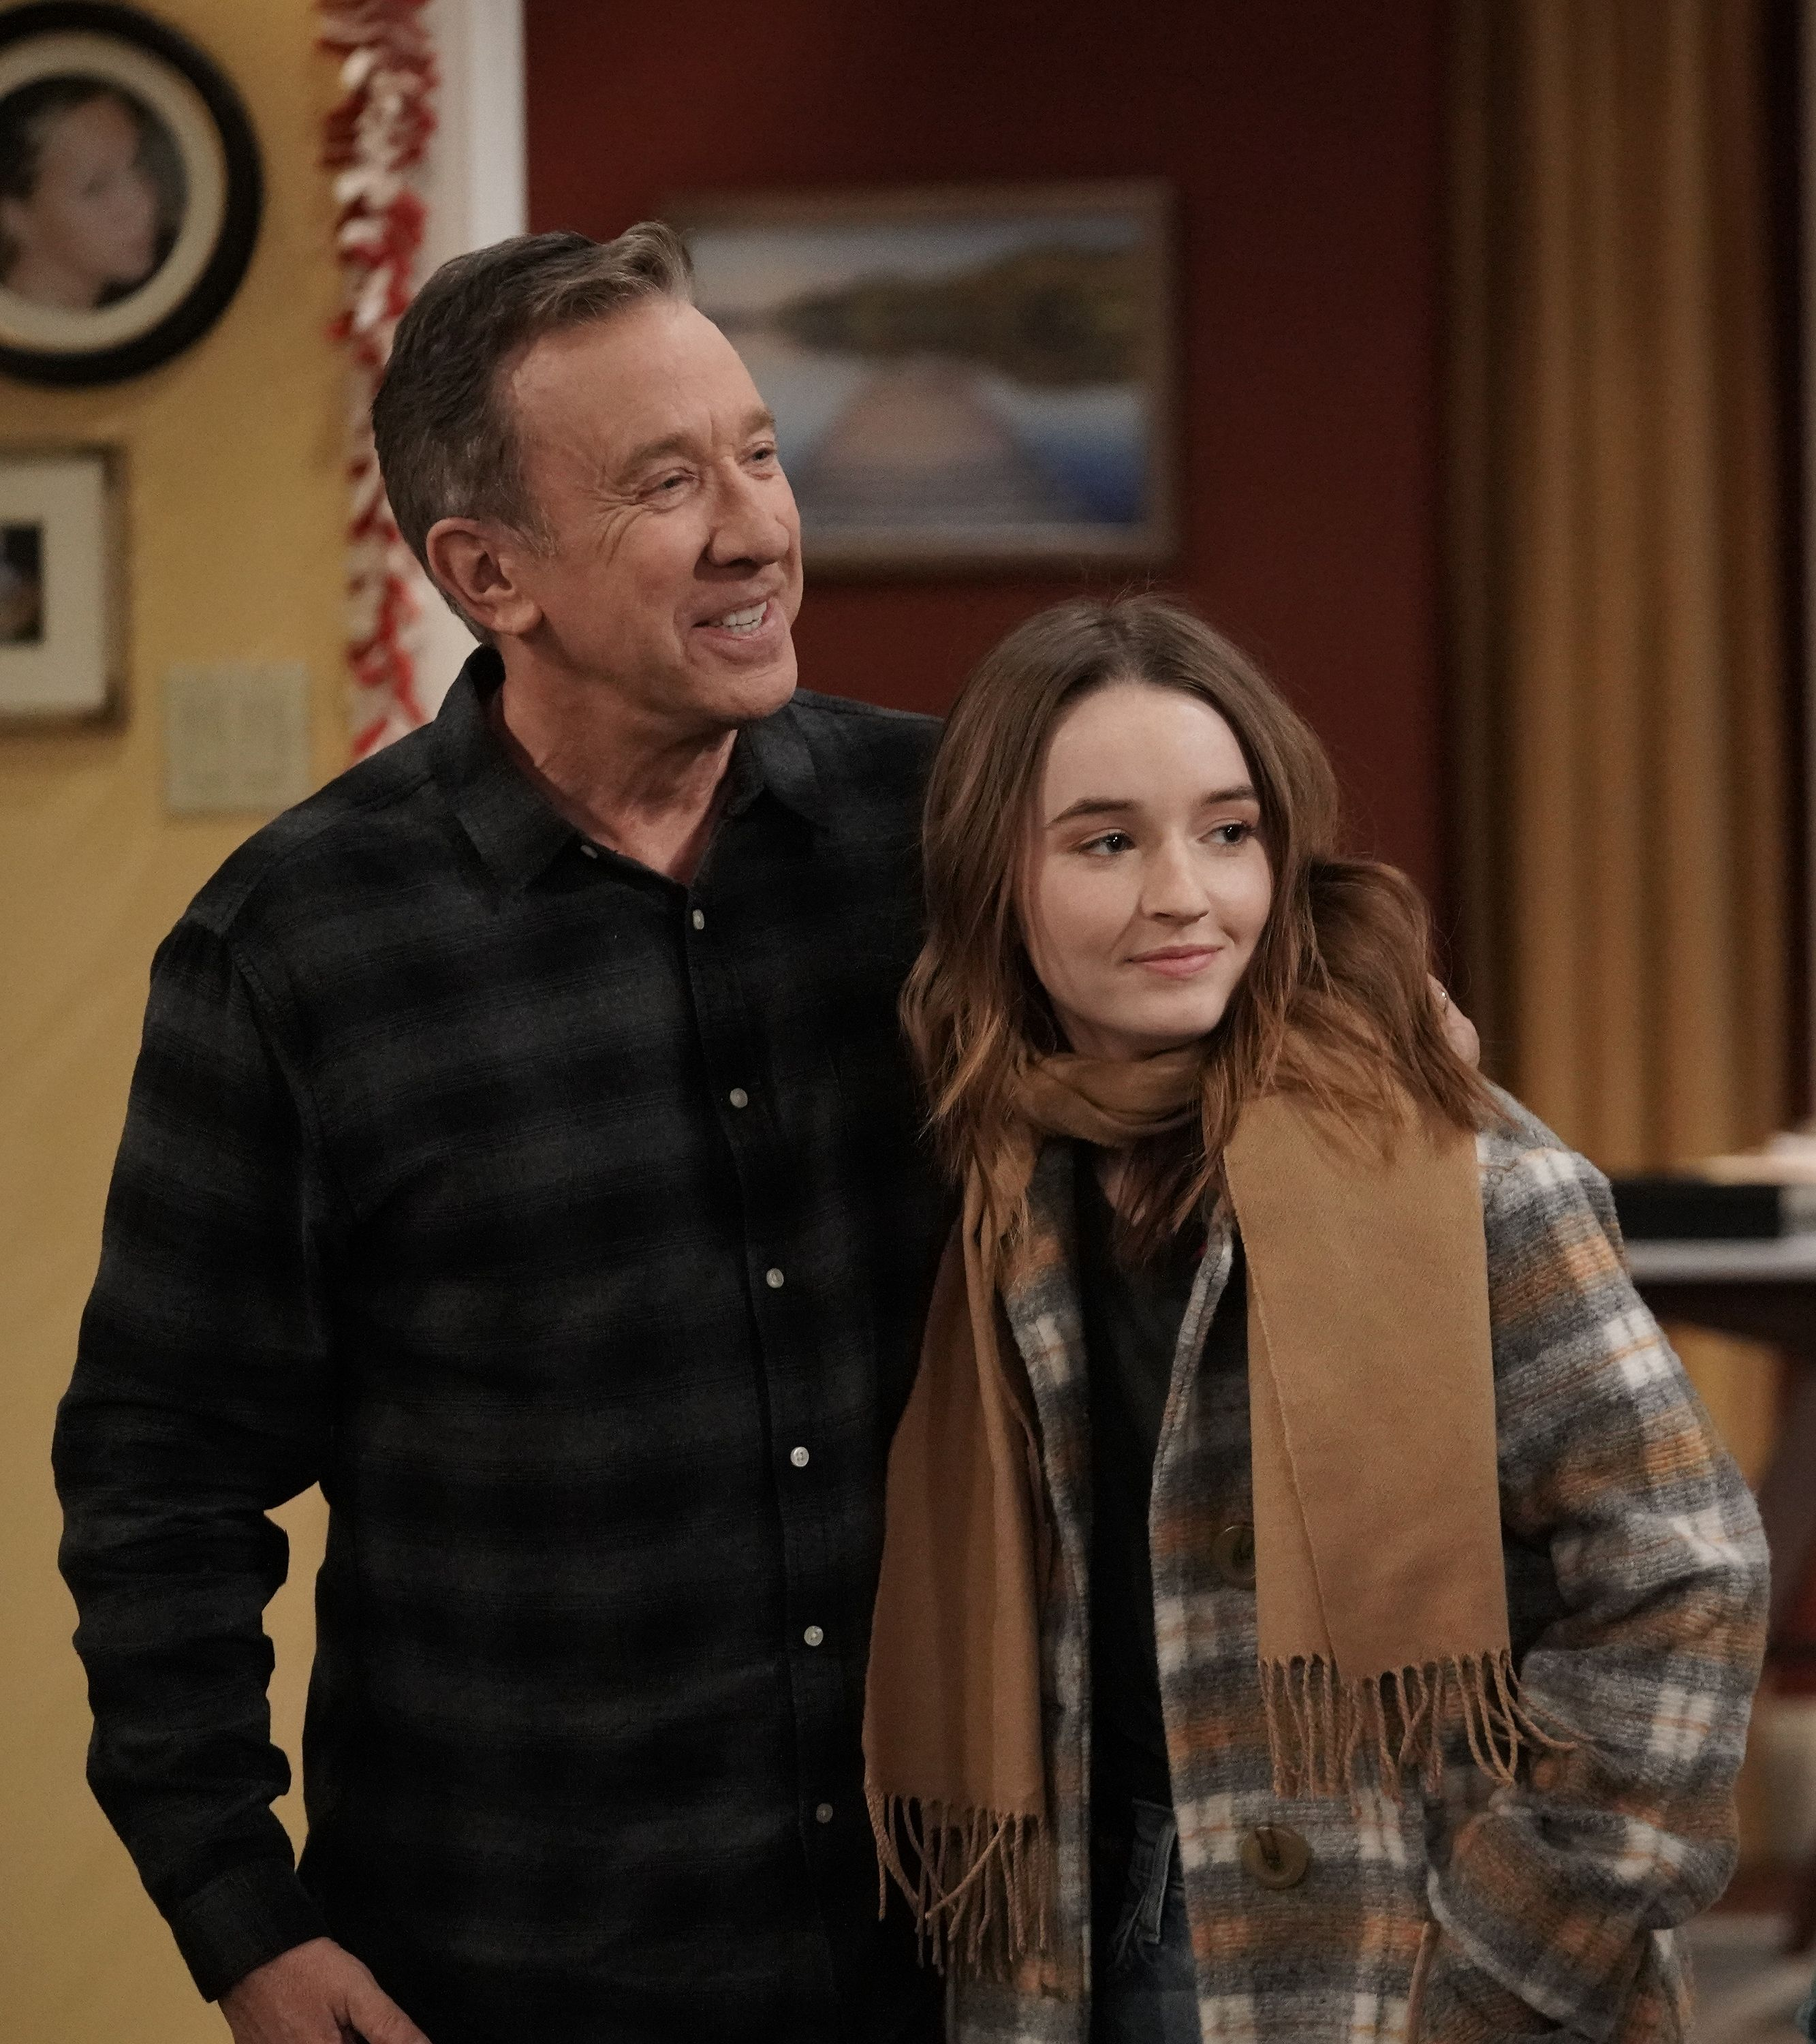 'Last Man Standing' Star Kaitlyn Dever Was Just Cast in Another Show